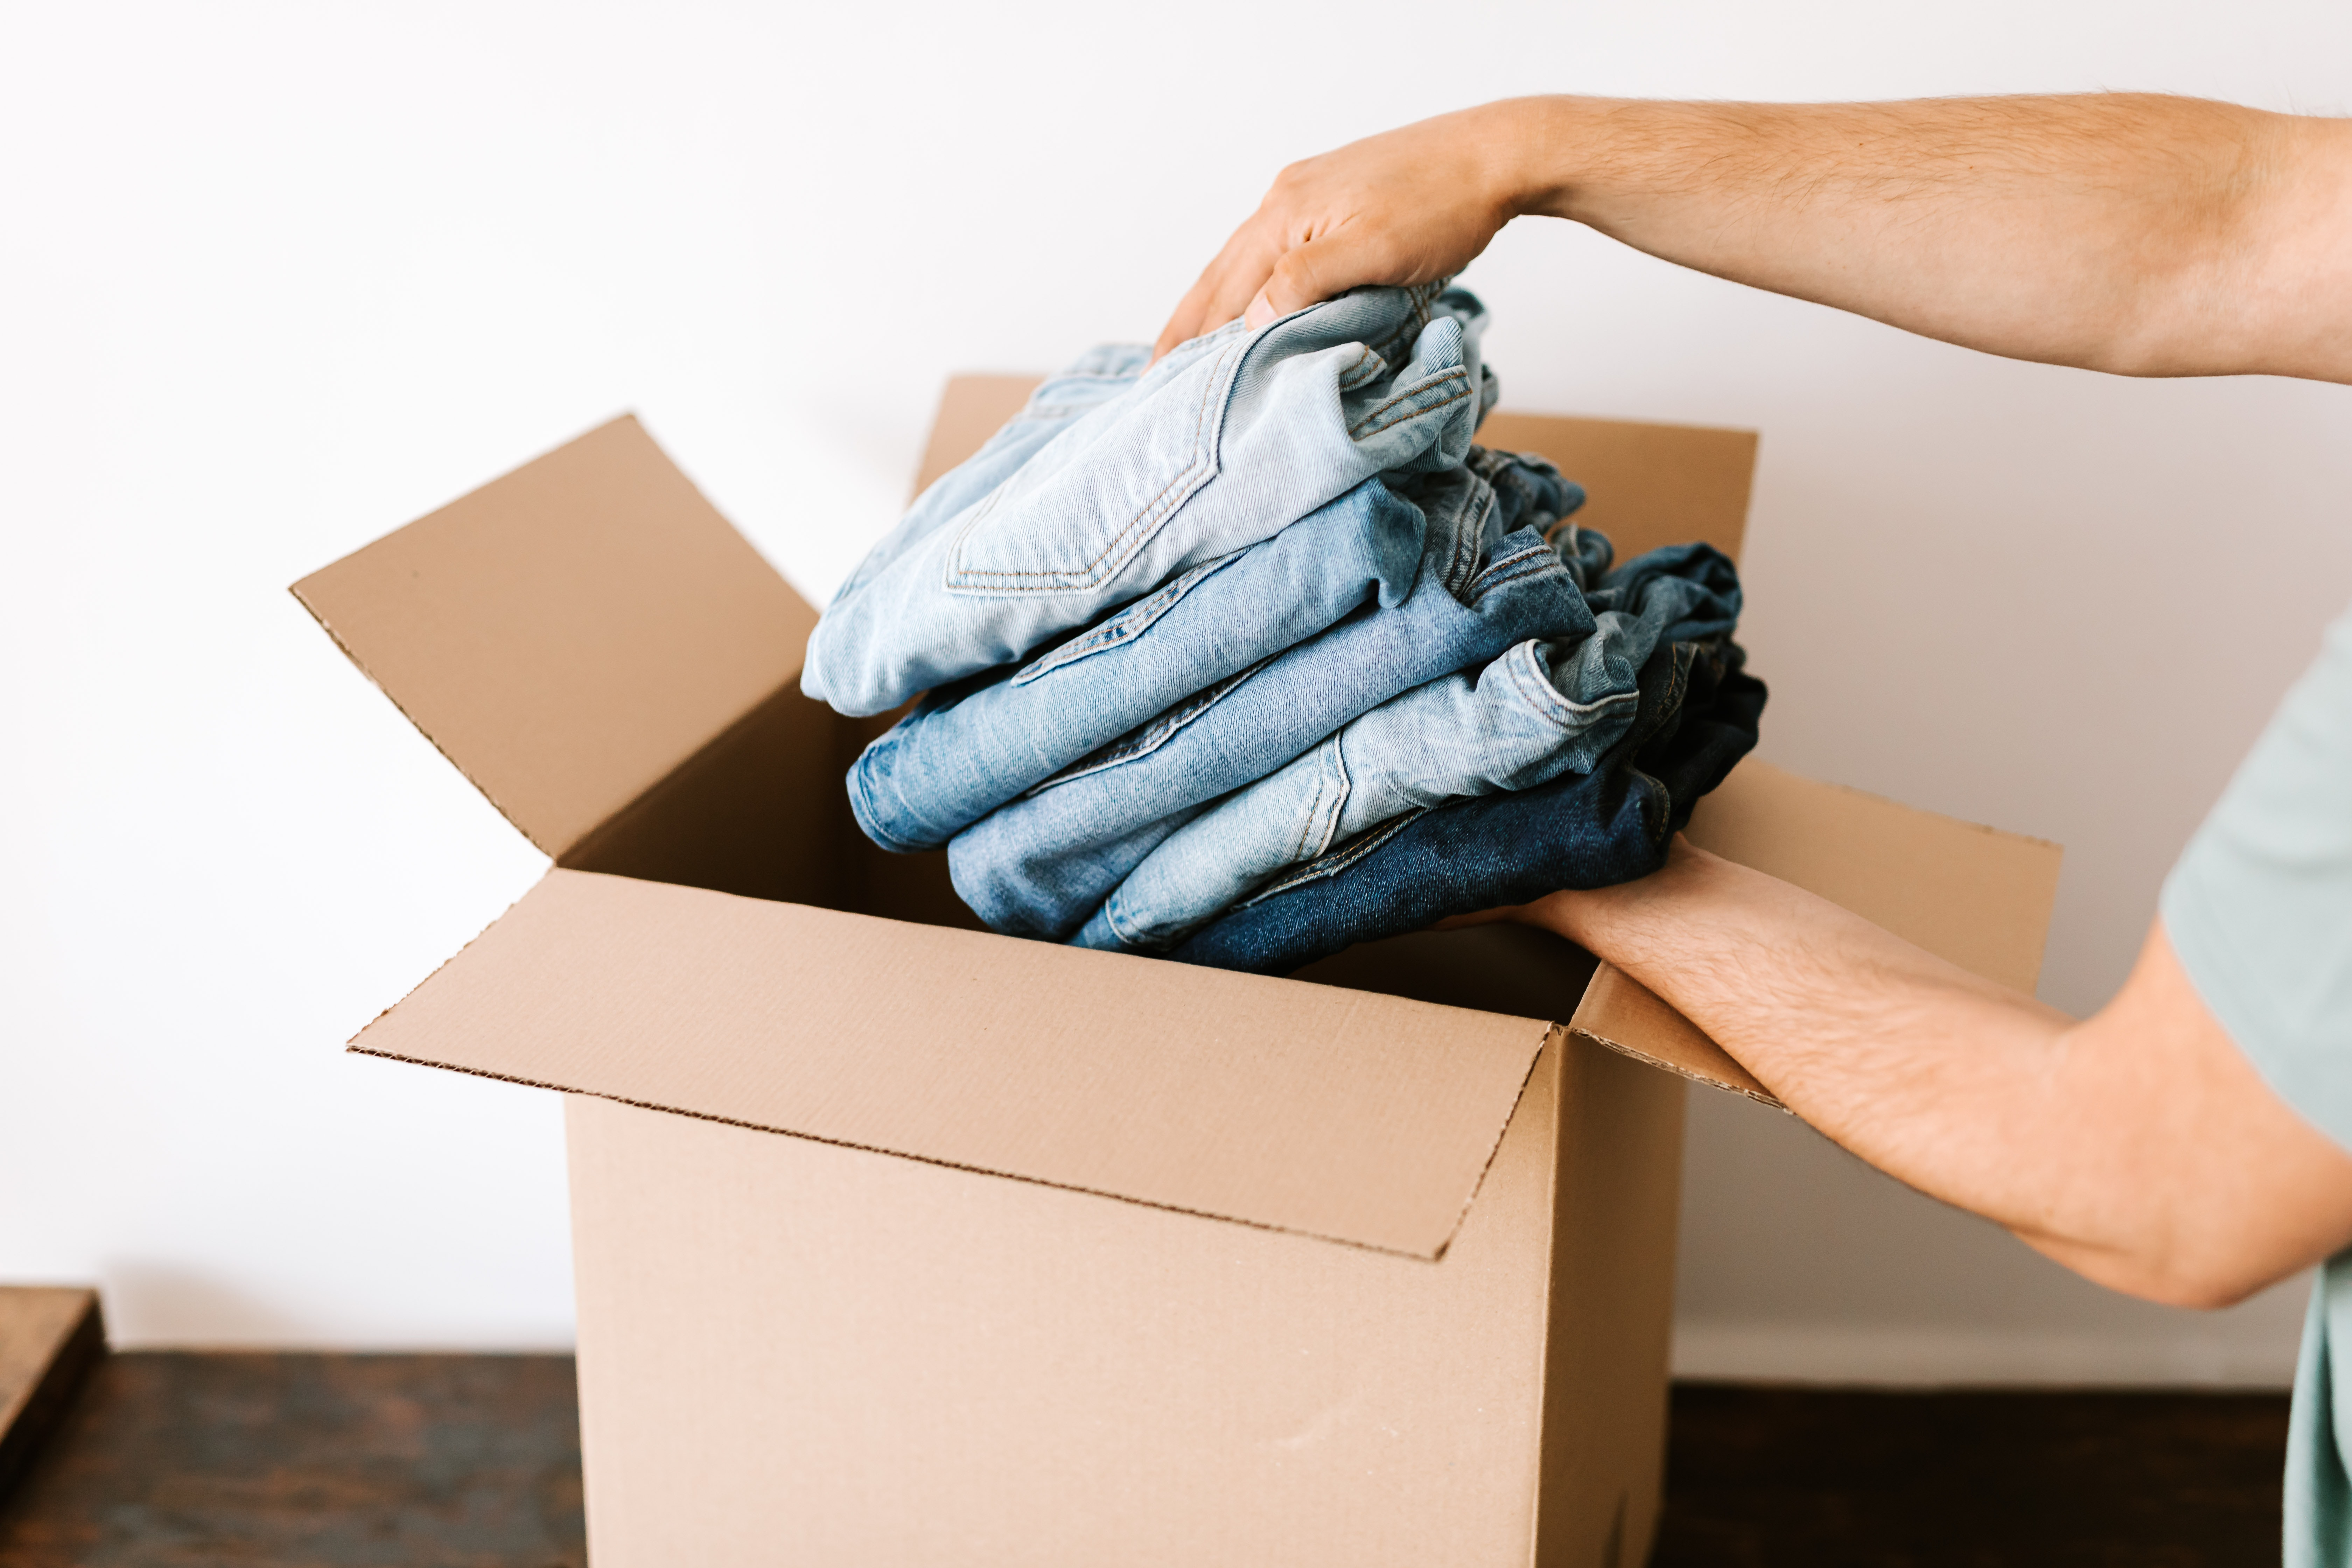 person packing jeans into a box